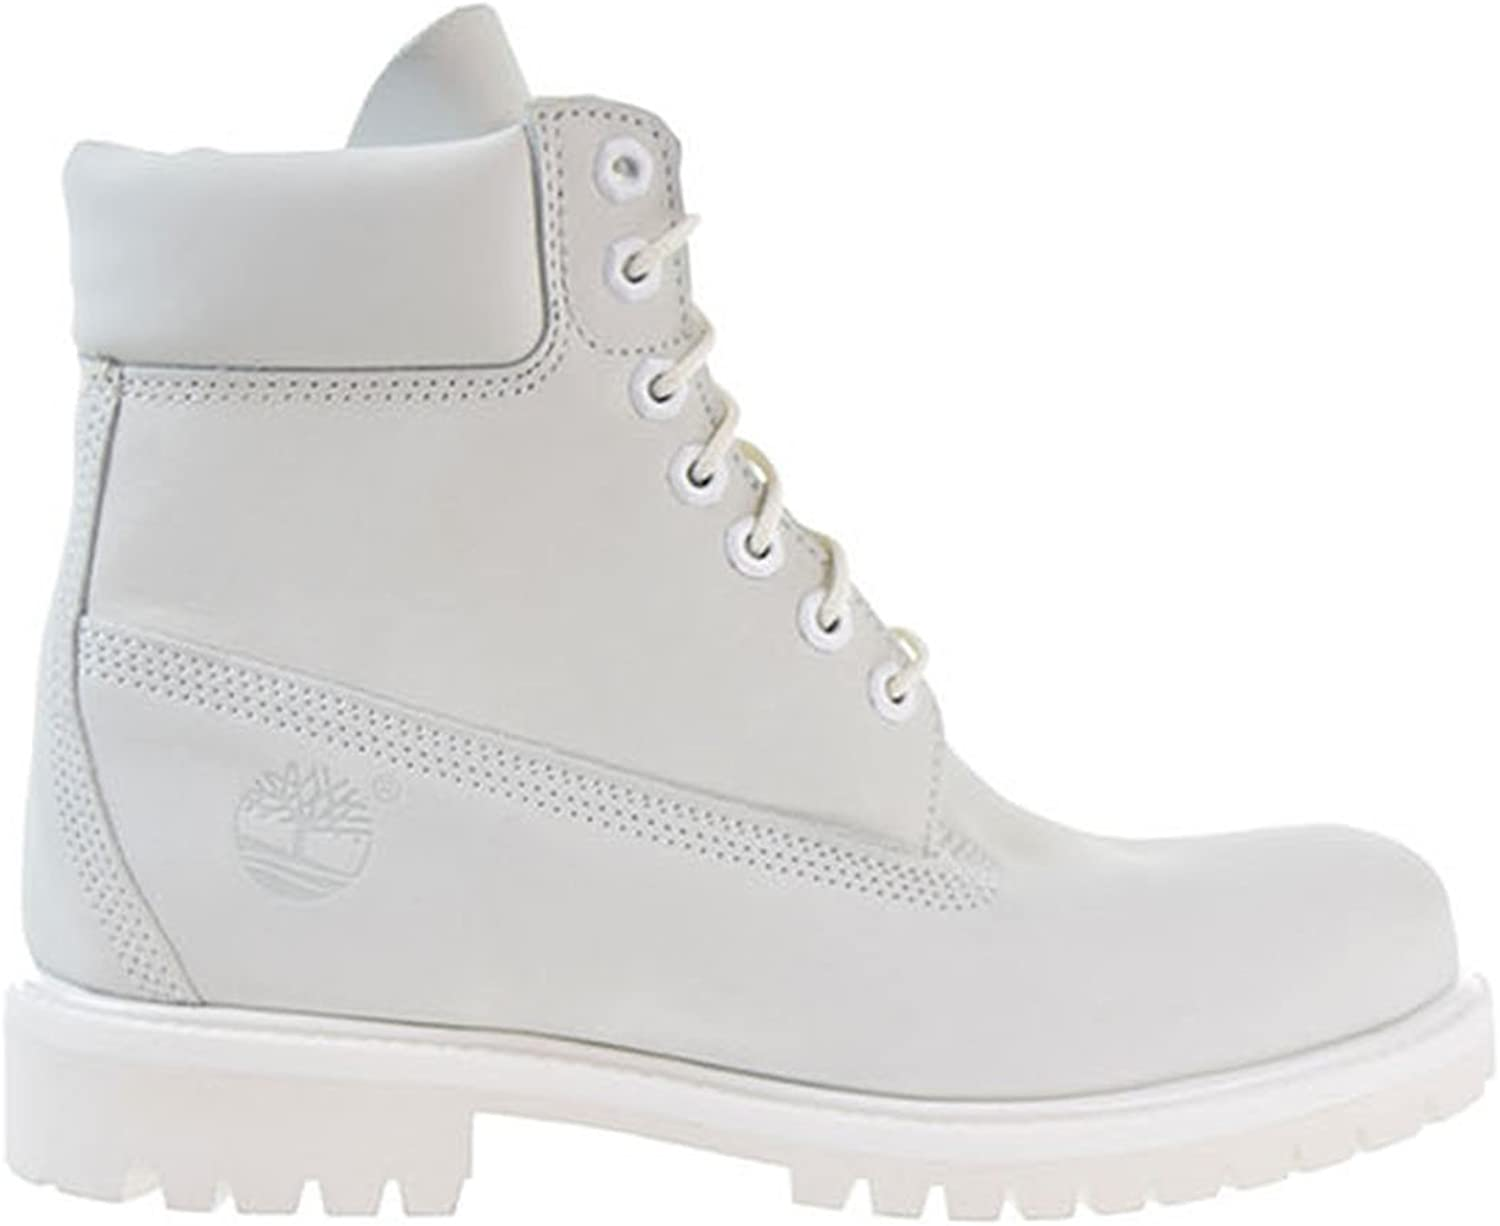 Inch Waterproof Mens Boots Ghost White